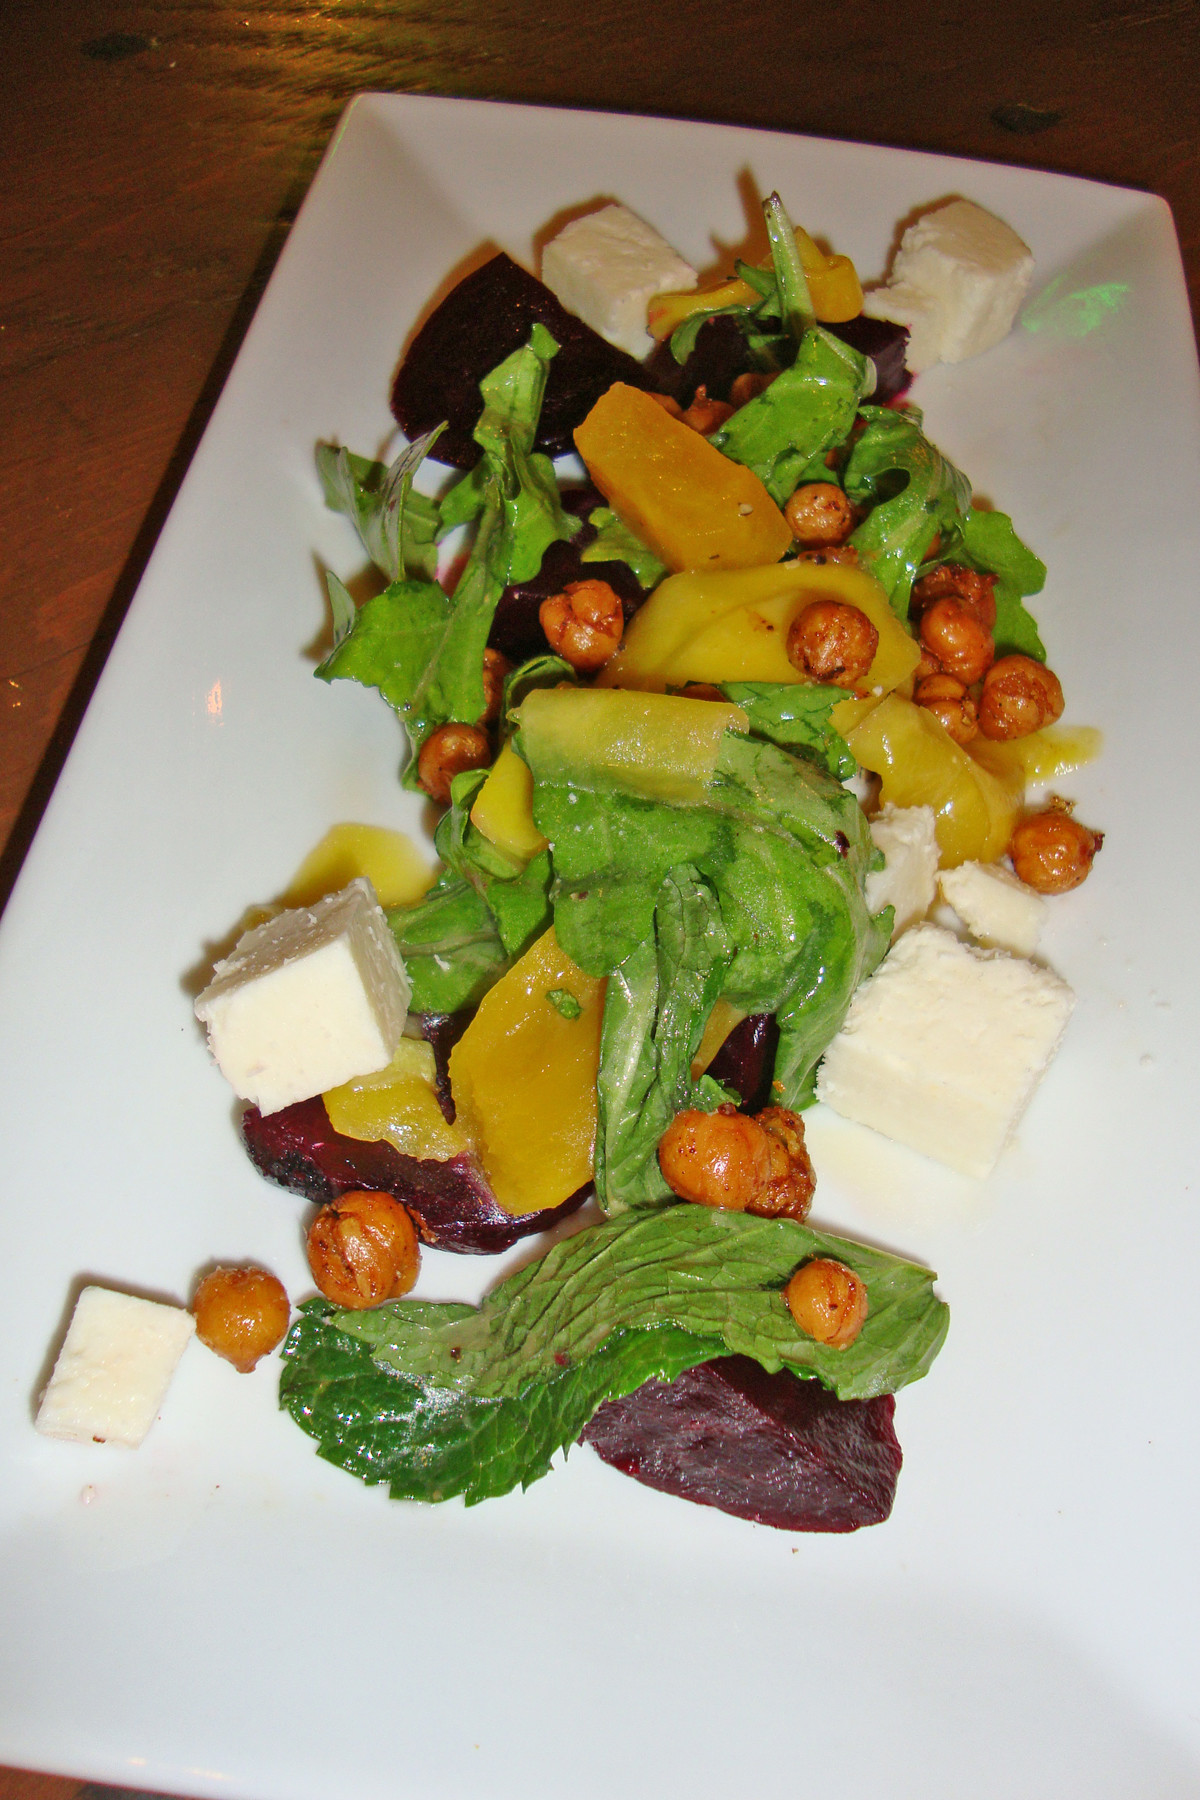 Earthy beets, roasted chickpeas, fresh mint, cubes of cotija cheese and pickled mango mingle in the roasted beet salad. There are four salad options on the menu.